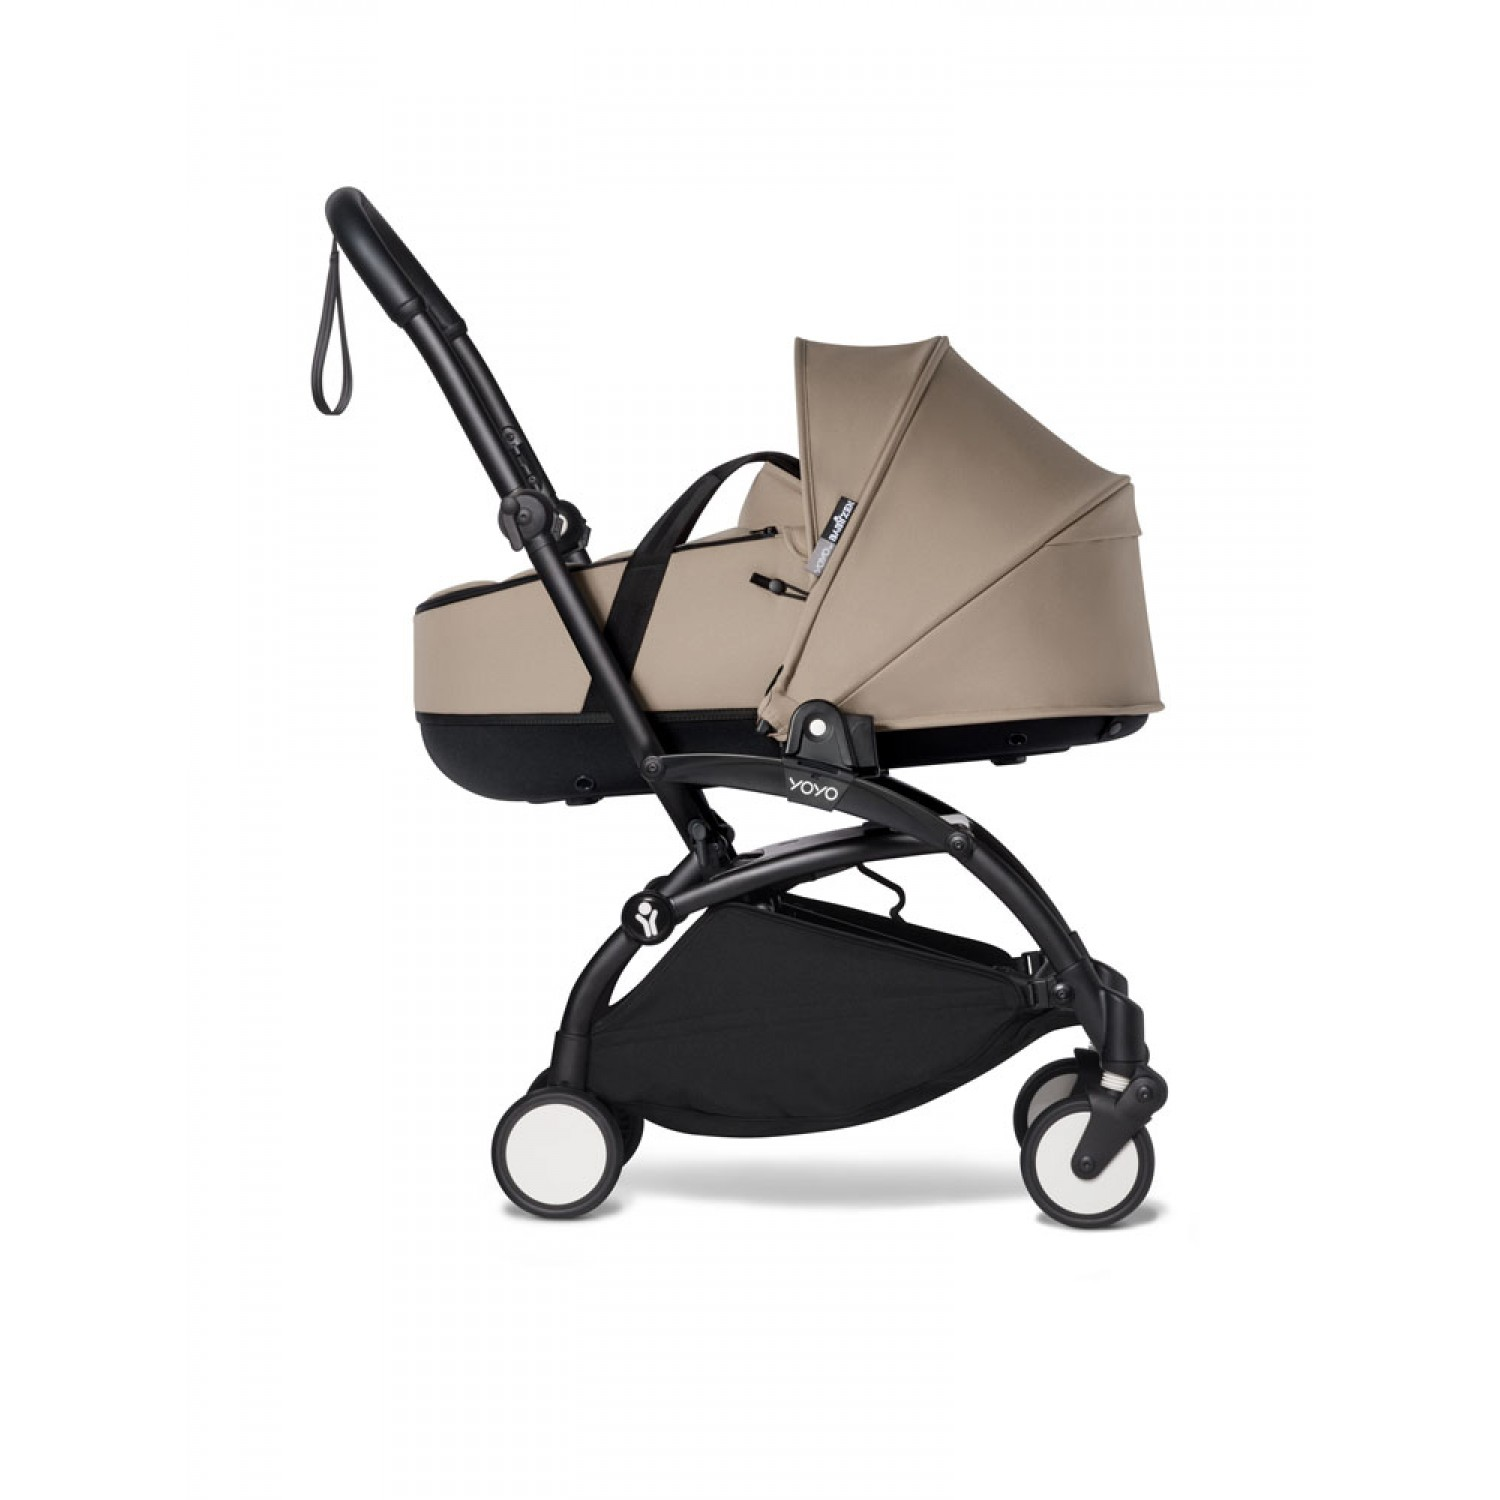 Complete BABYZEN stroller YOYO2 bassinet and 6+ Black Frame | Taupe